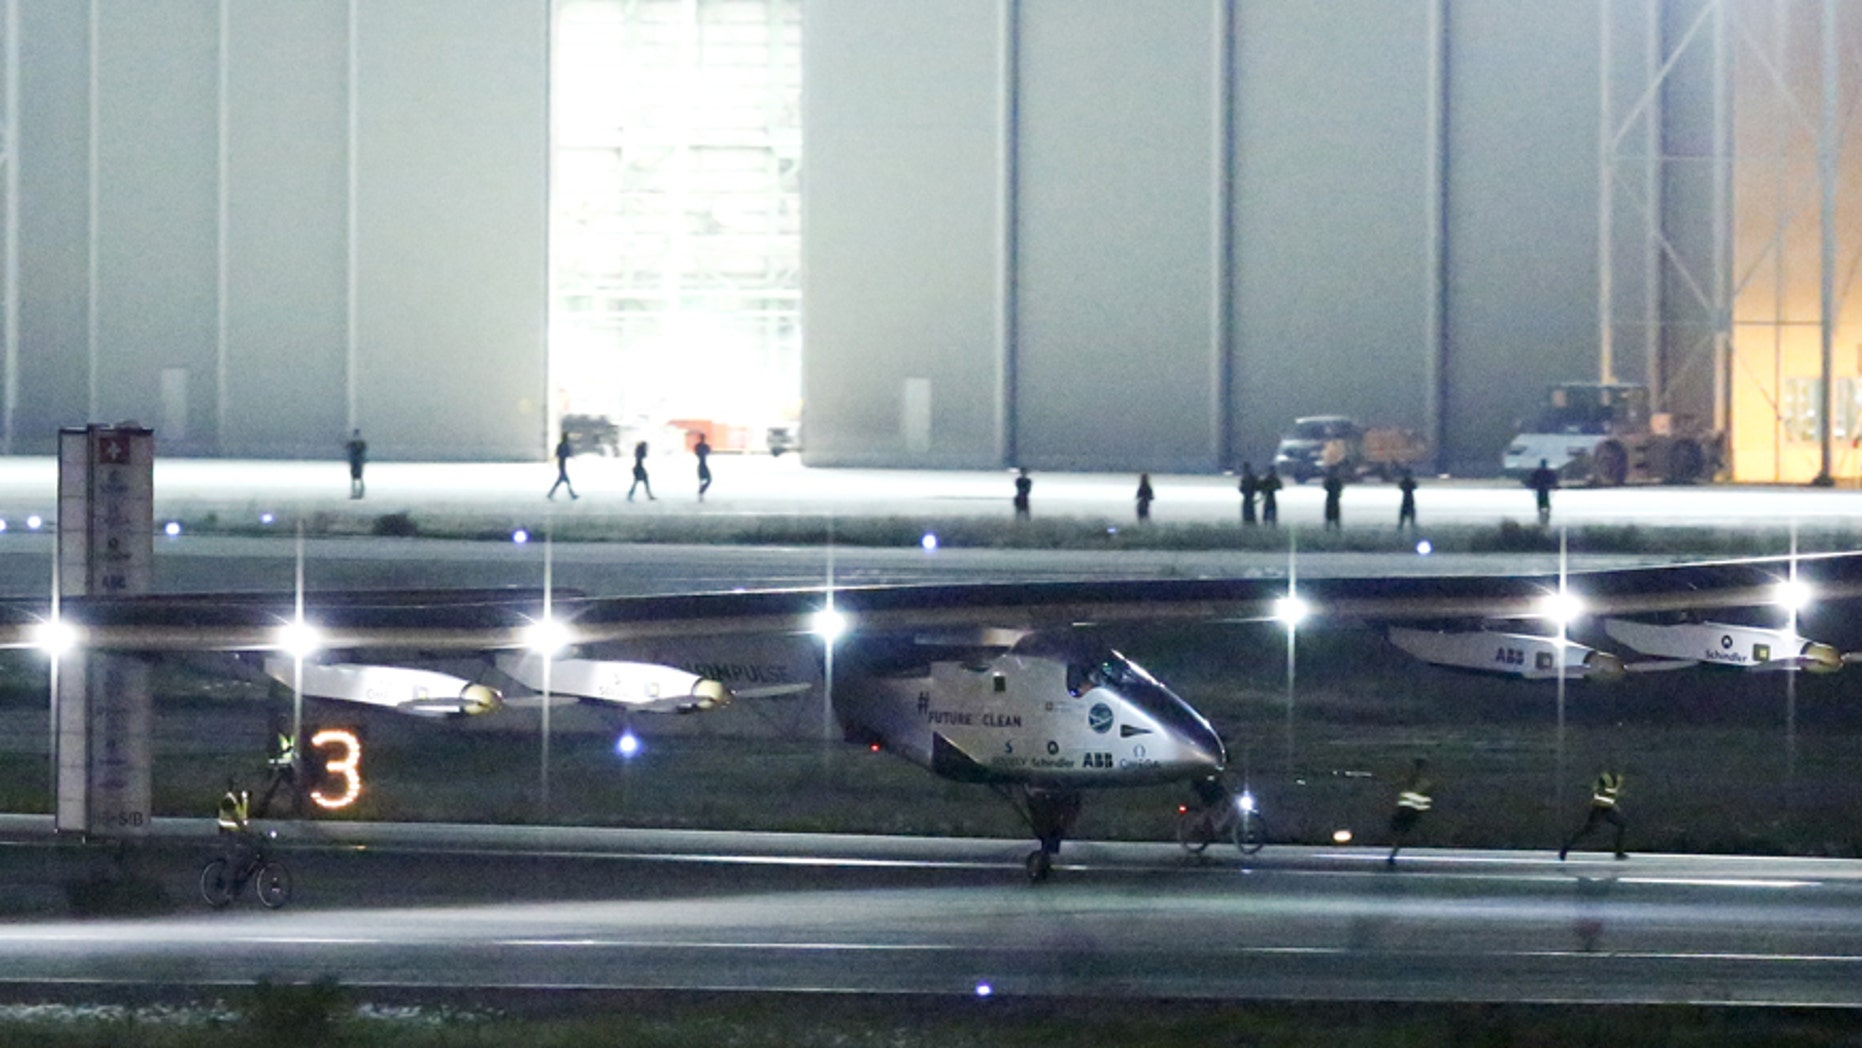 The Solar Impulse 2, a solar powered plane, touches down at Nagoya airport in Japan June 1, 2015.